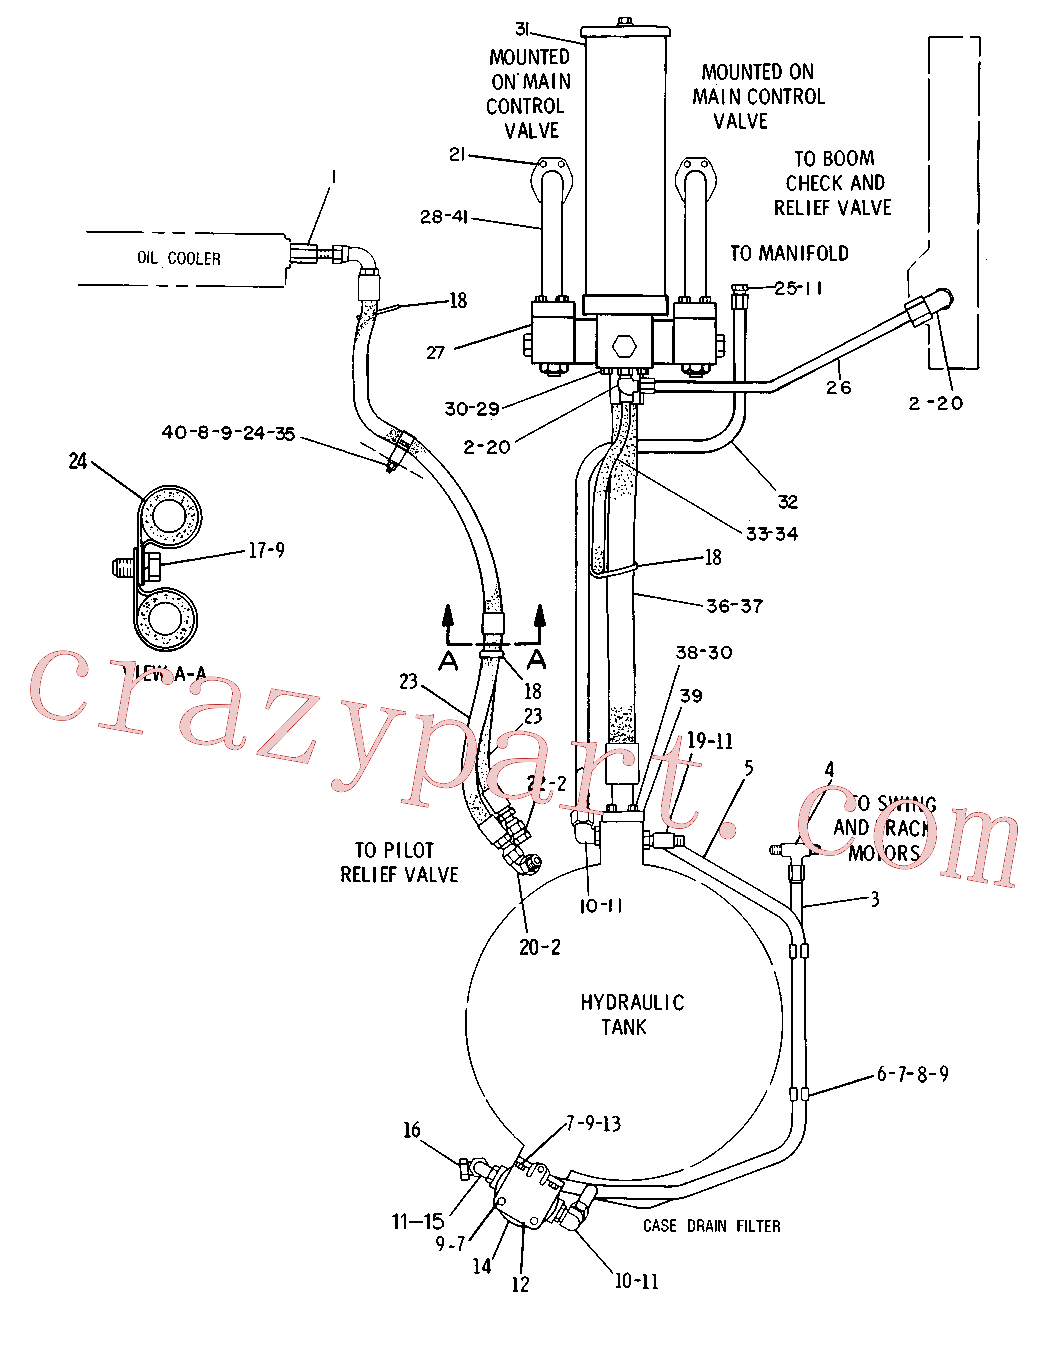 CAT 6J-2236 for 950 Wheel Loader(WTL) hydraulic system 5C-0383 Assembly